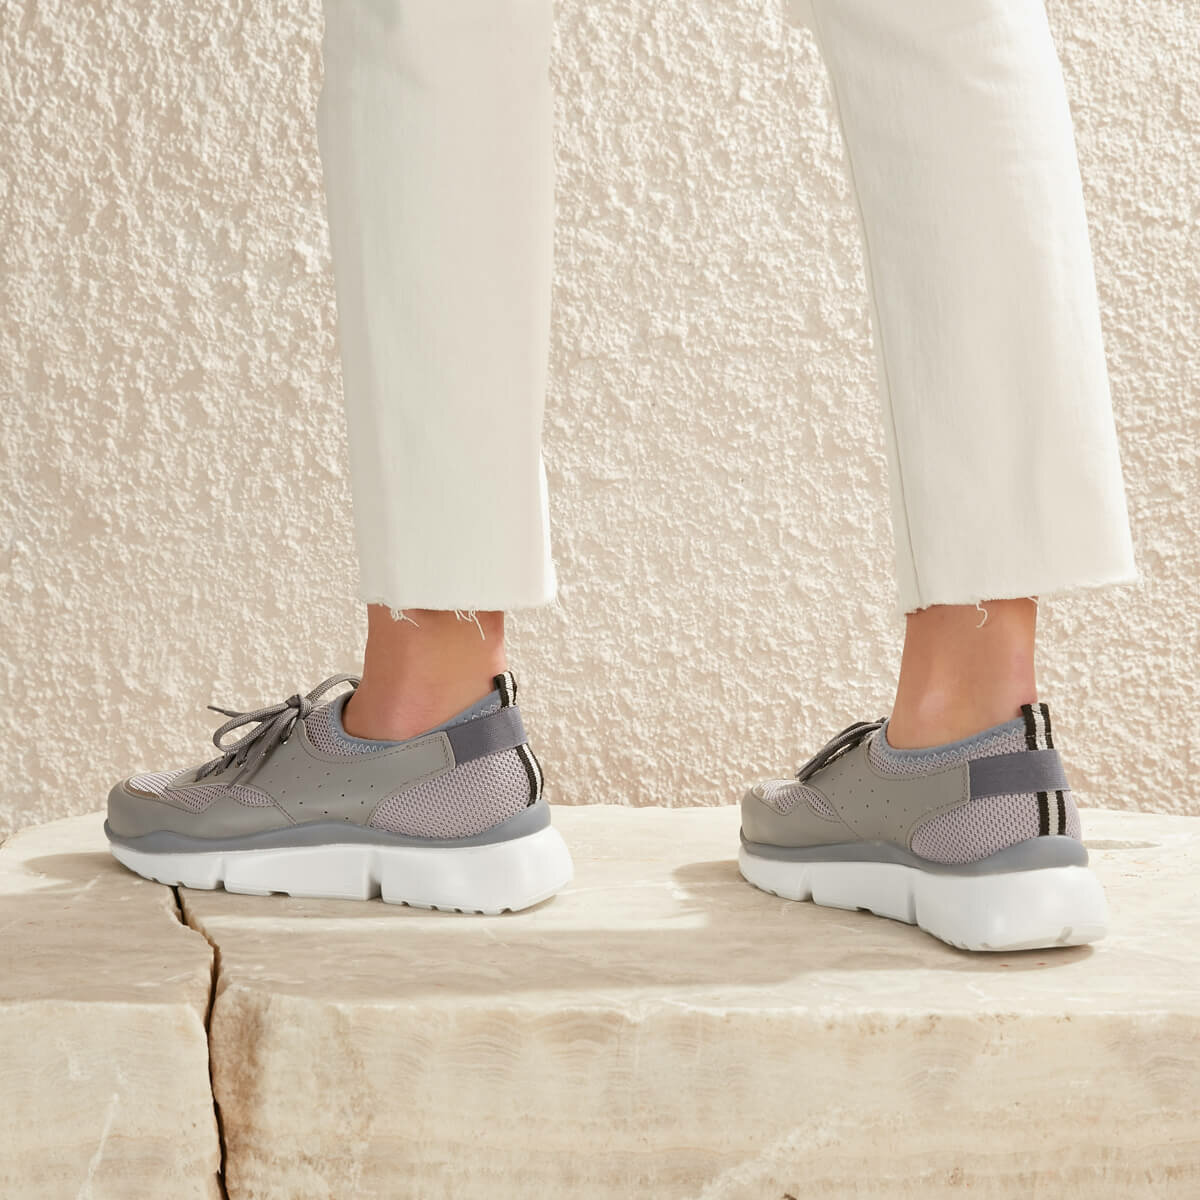 FLO MELTEM78Z SKIN Light Gray Women 'S Sneaker Shoes BUTIGO